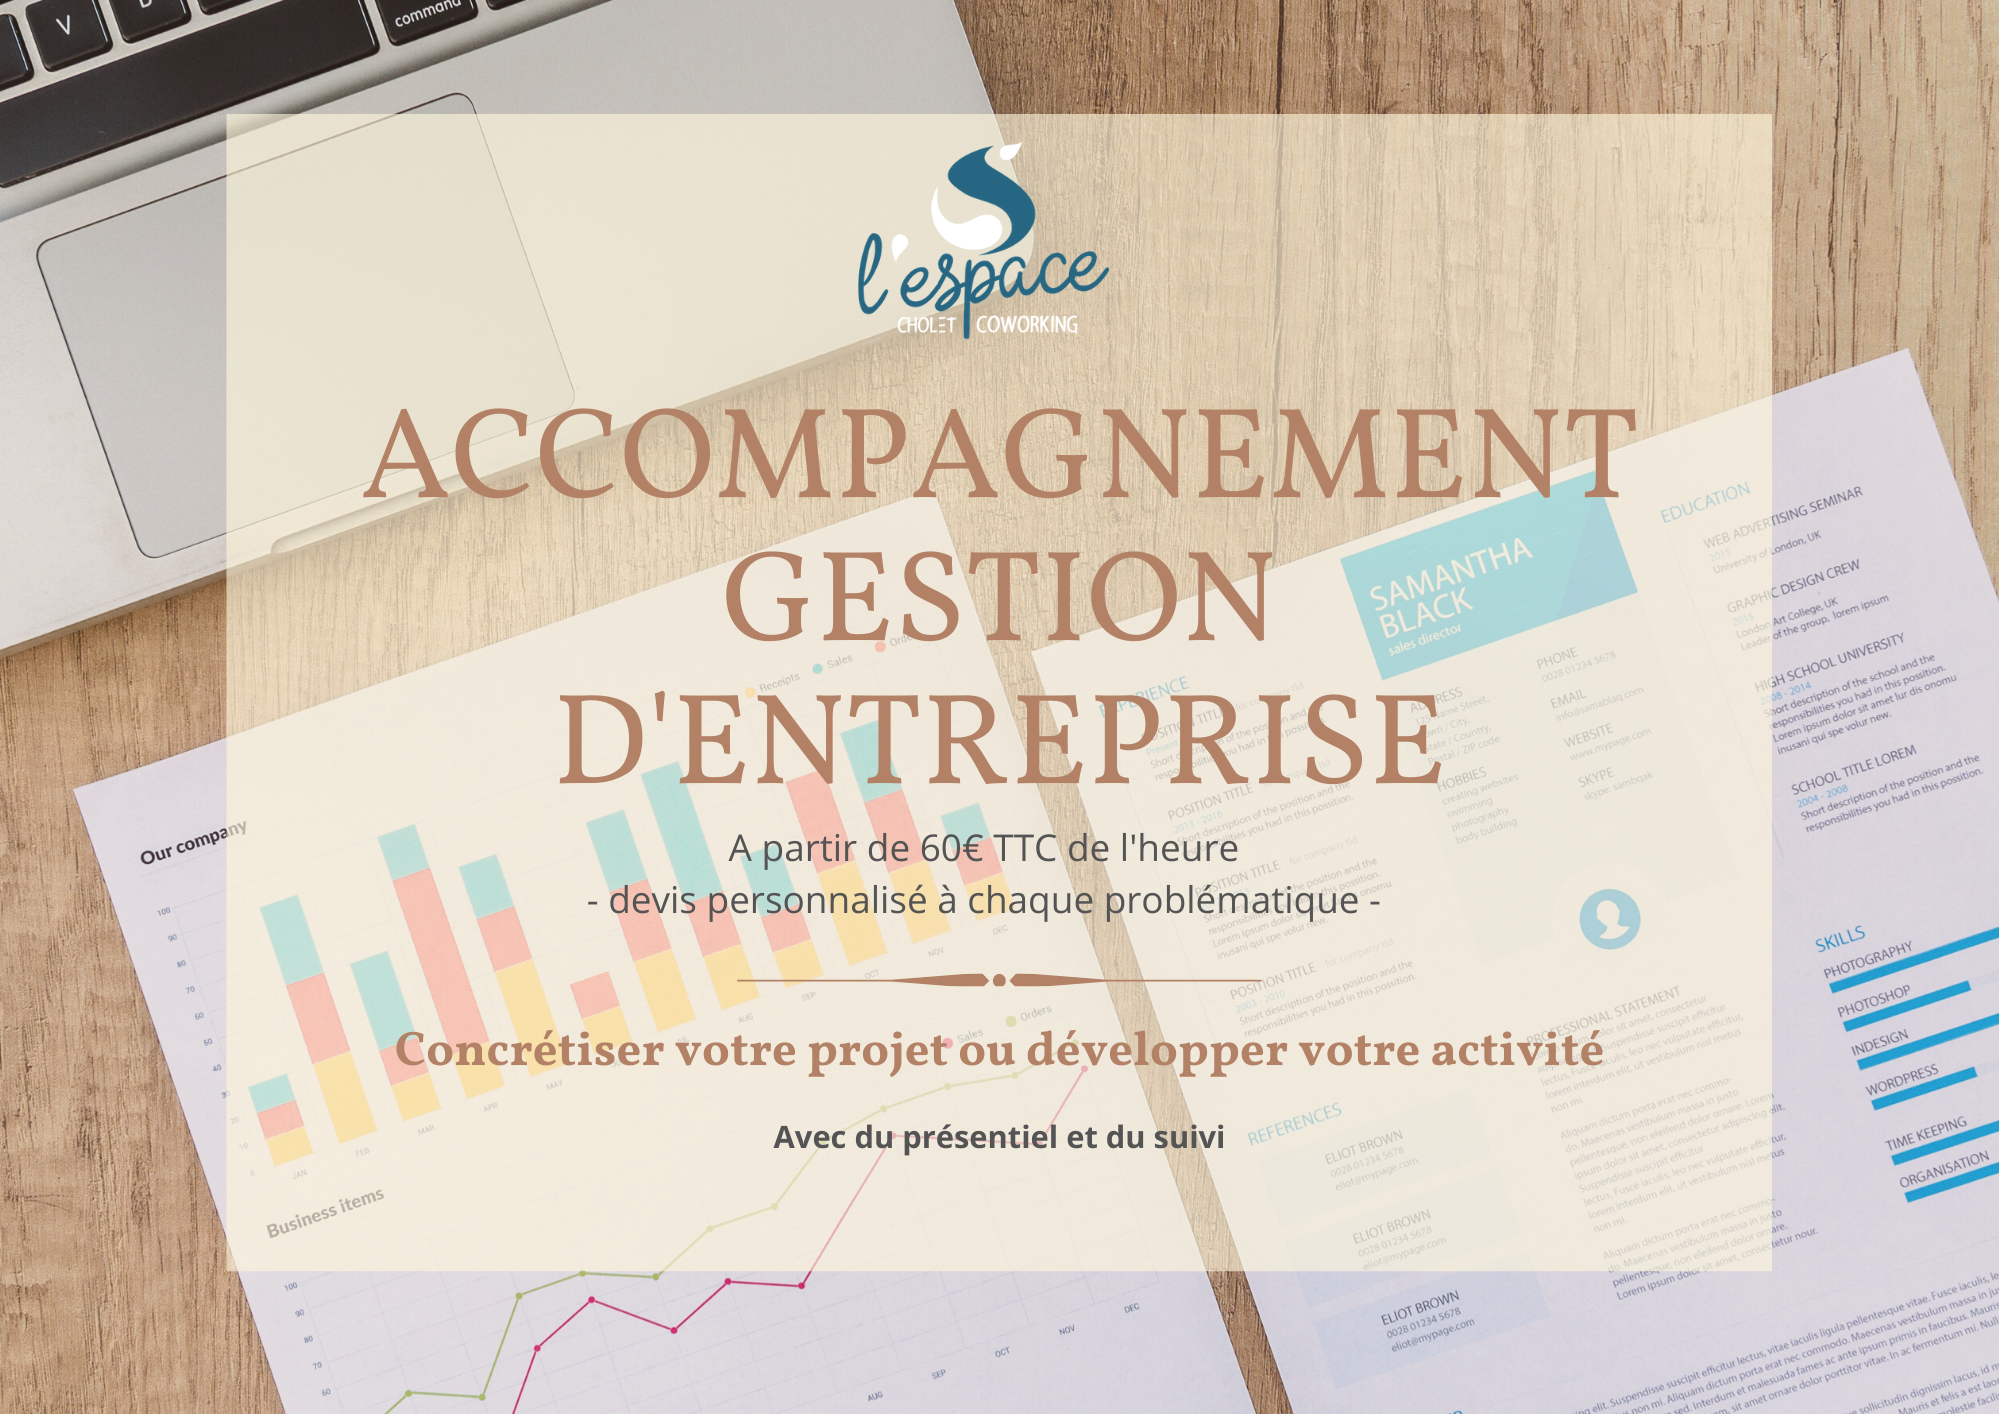 Accompagnement expansion